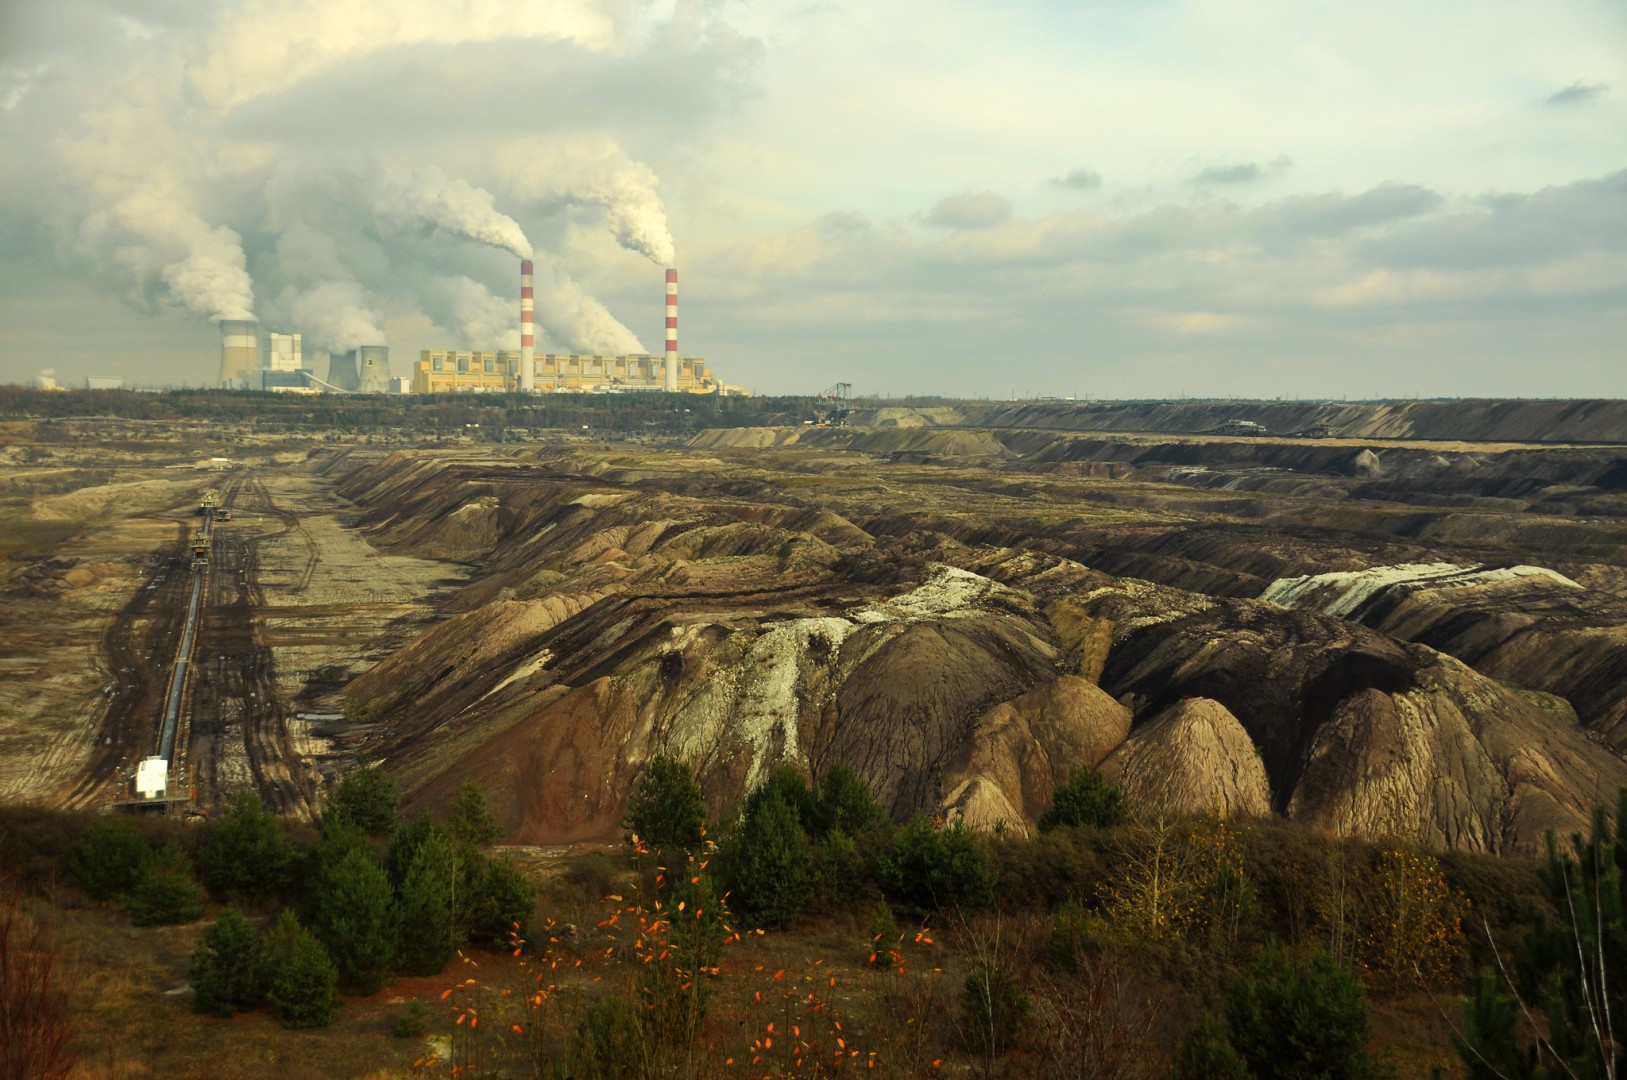 A solar reconversion would unlock jobs and TWh of clean power for places like Poland's Bełchatów, which may have to move away from coal in the future (Credit: Greenpeace Polska)